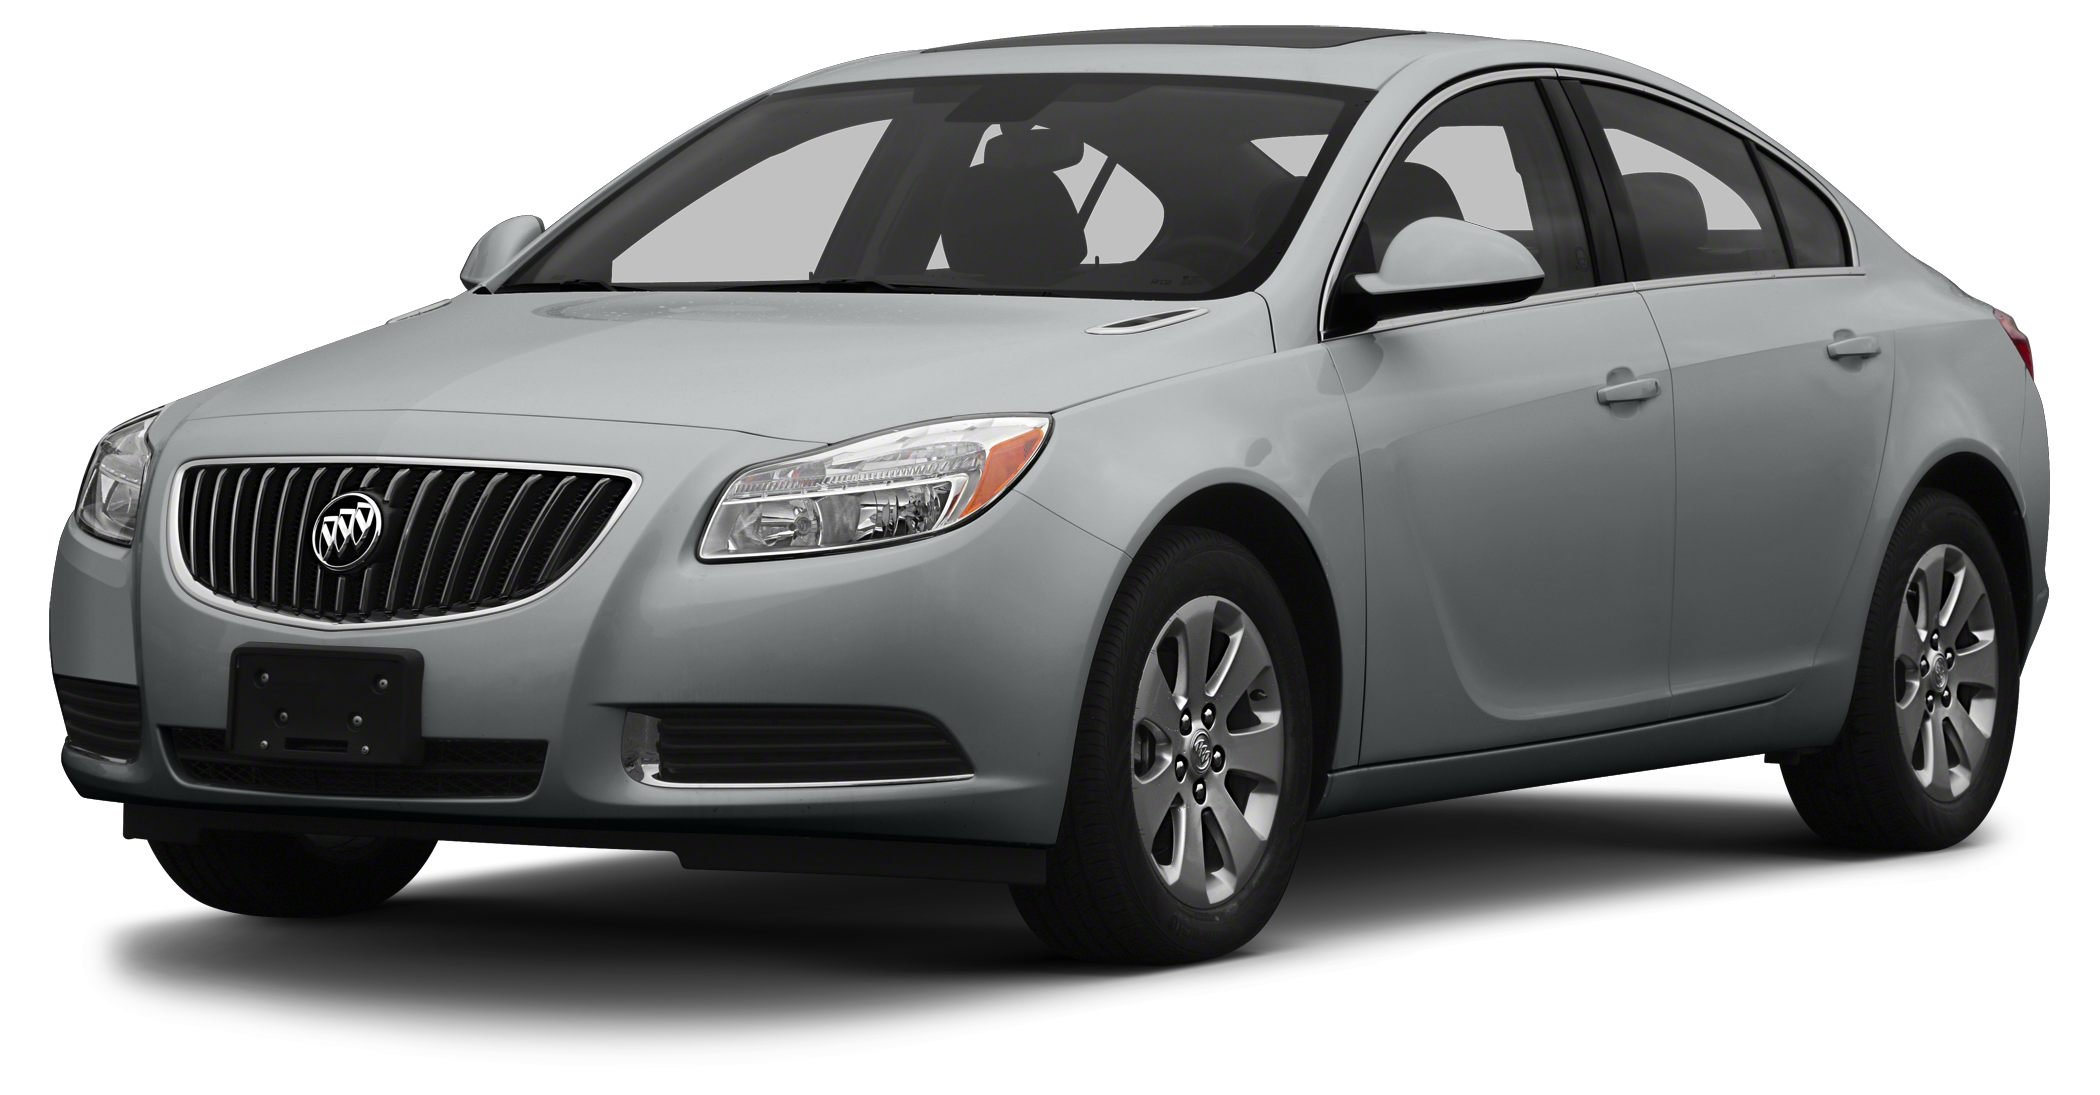 2013 Buick Regal Premium 1 Never worry on the road again with anti-lock brakes parking assistance